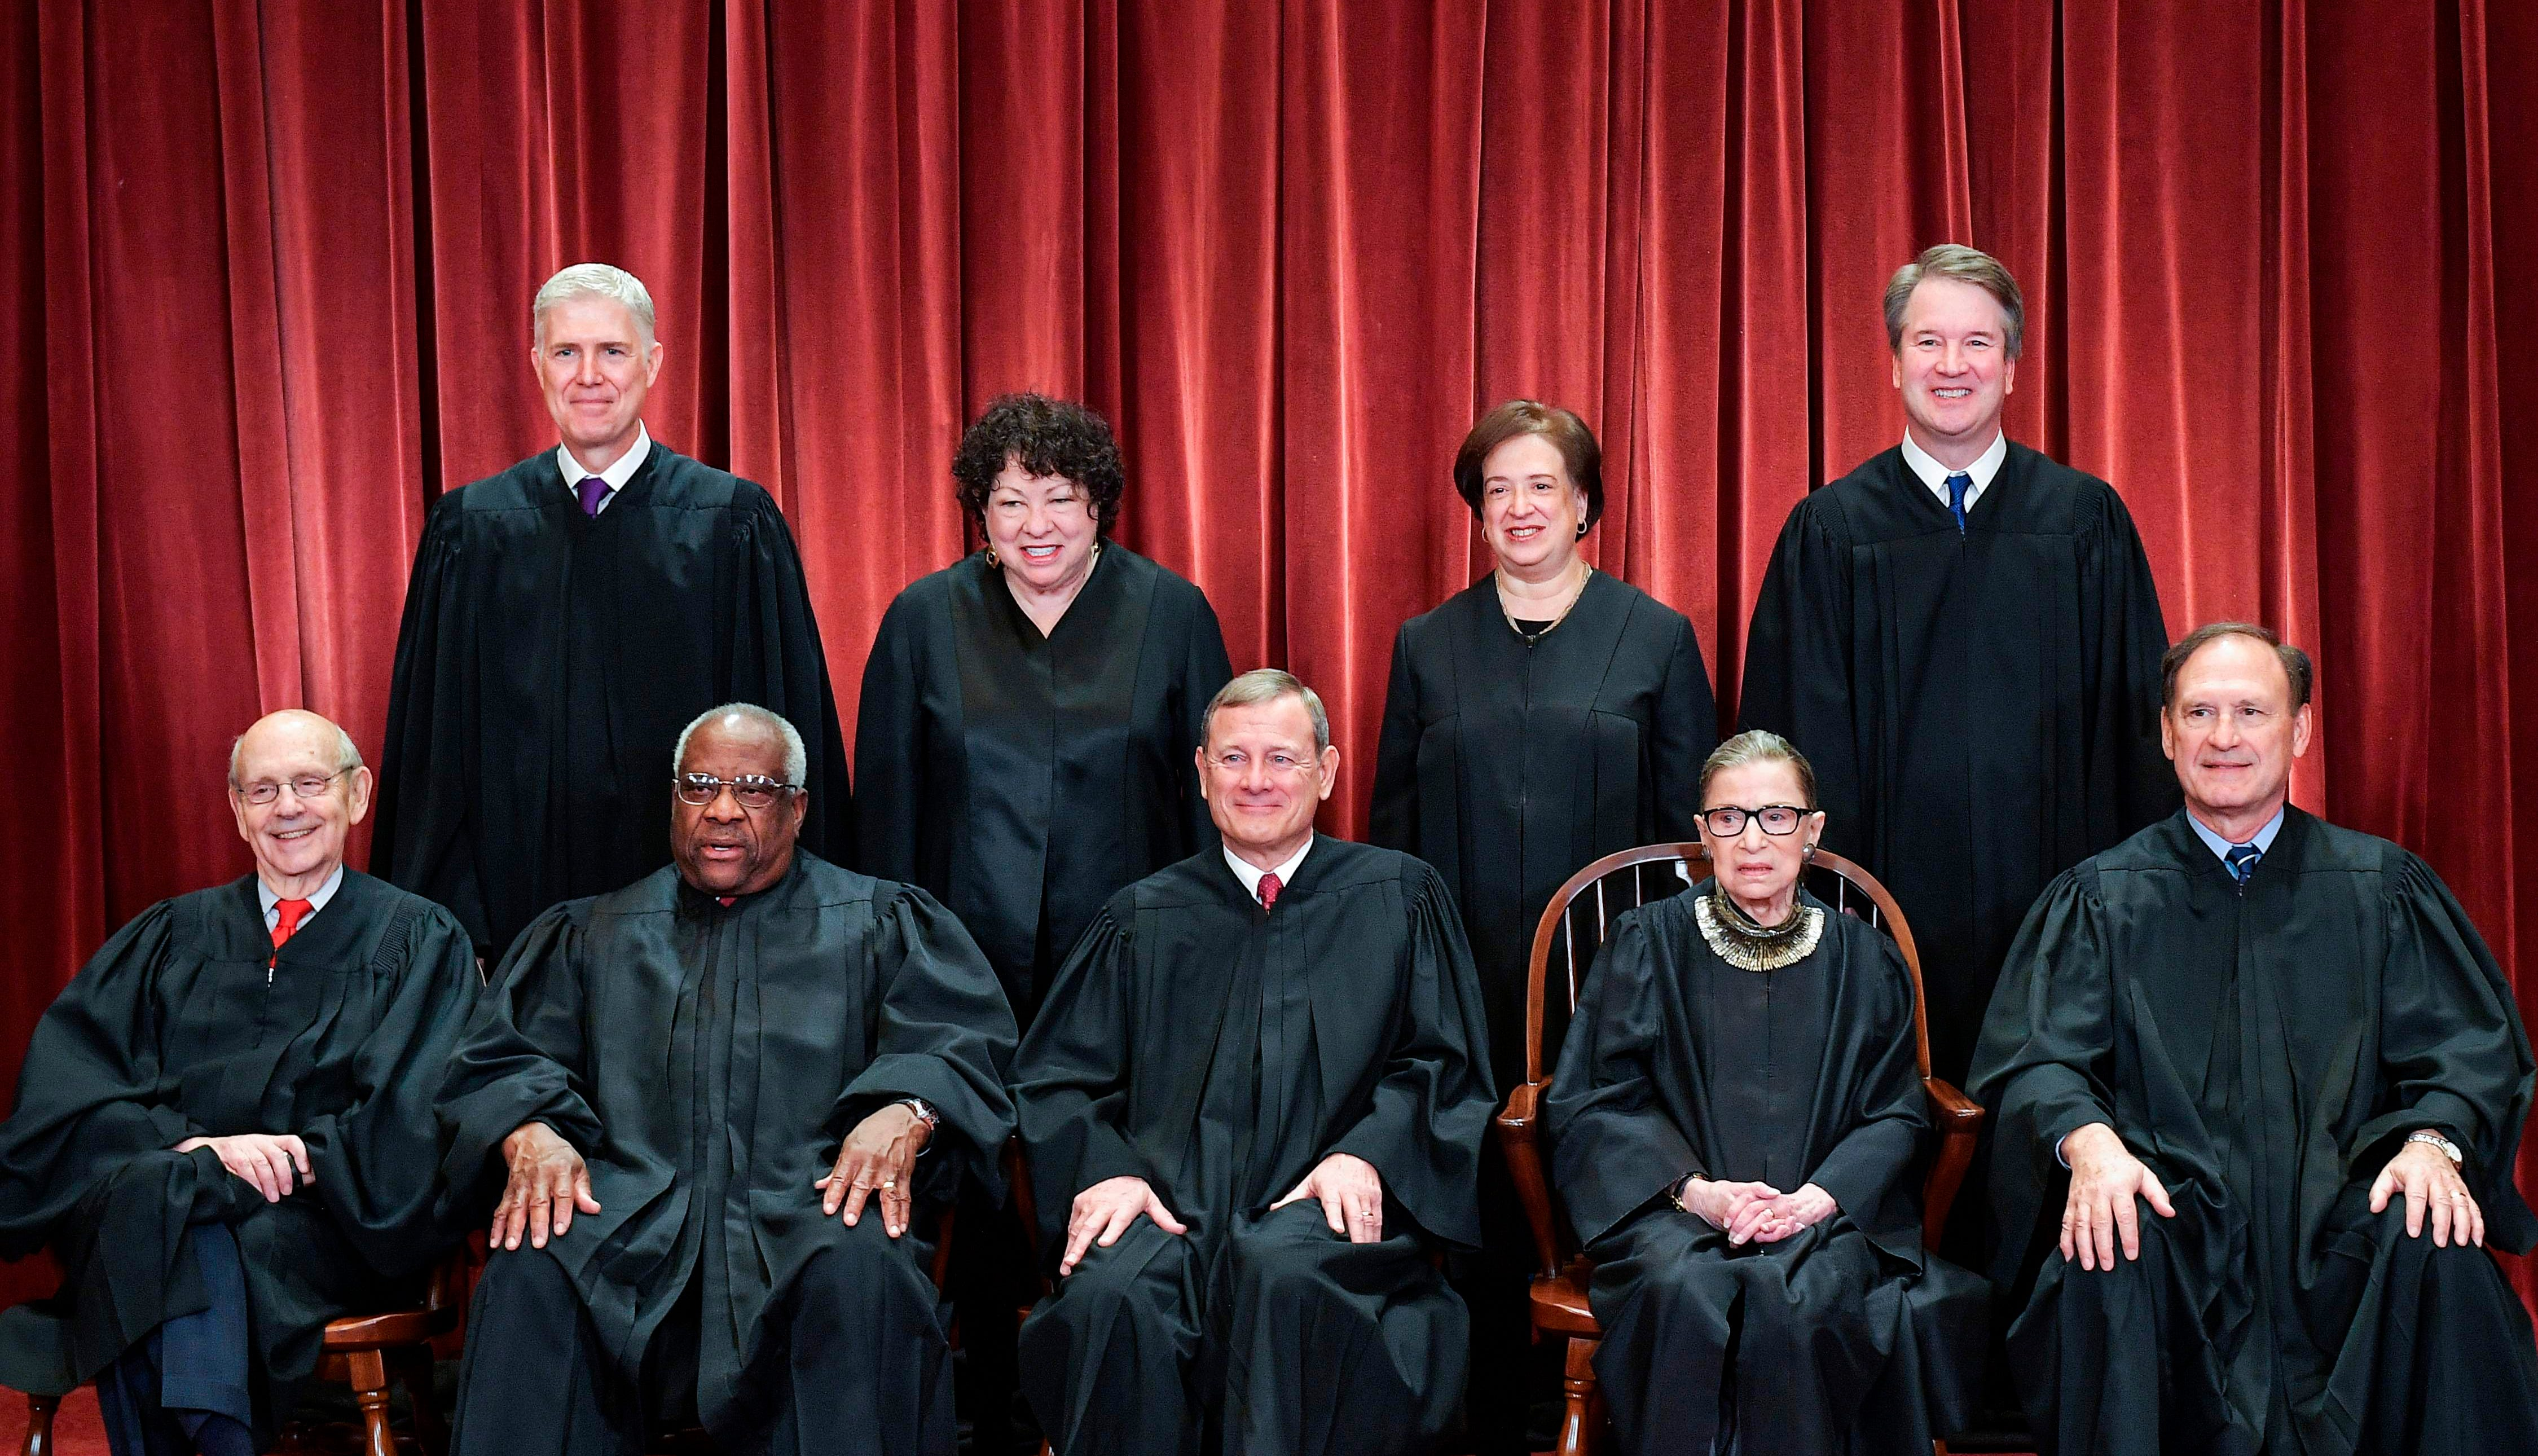 Associate Justices Neil Gorsuch, top left, and Brett Kavanaugh, top right, are staking out different positions on the Supreme Court.